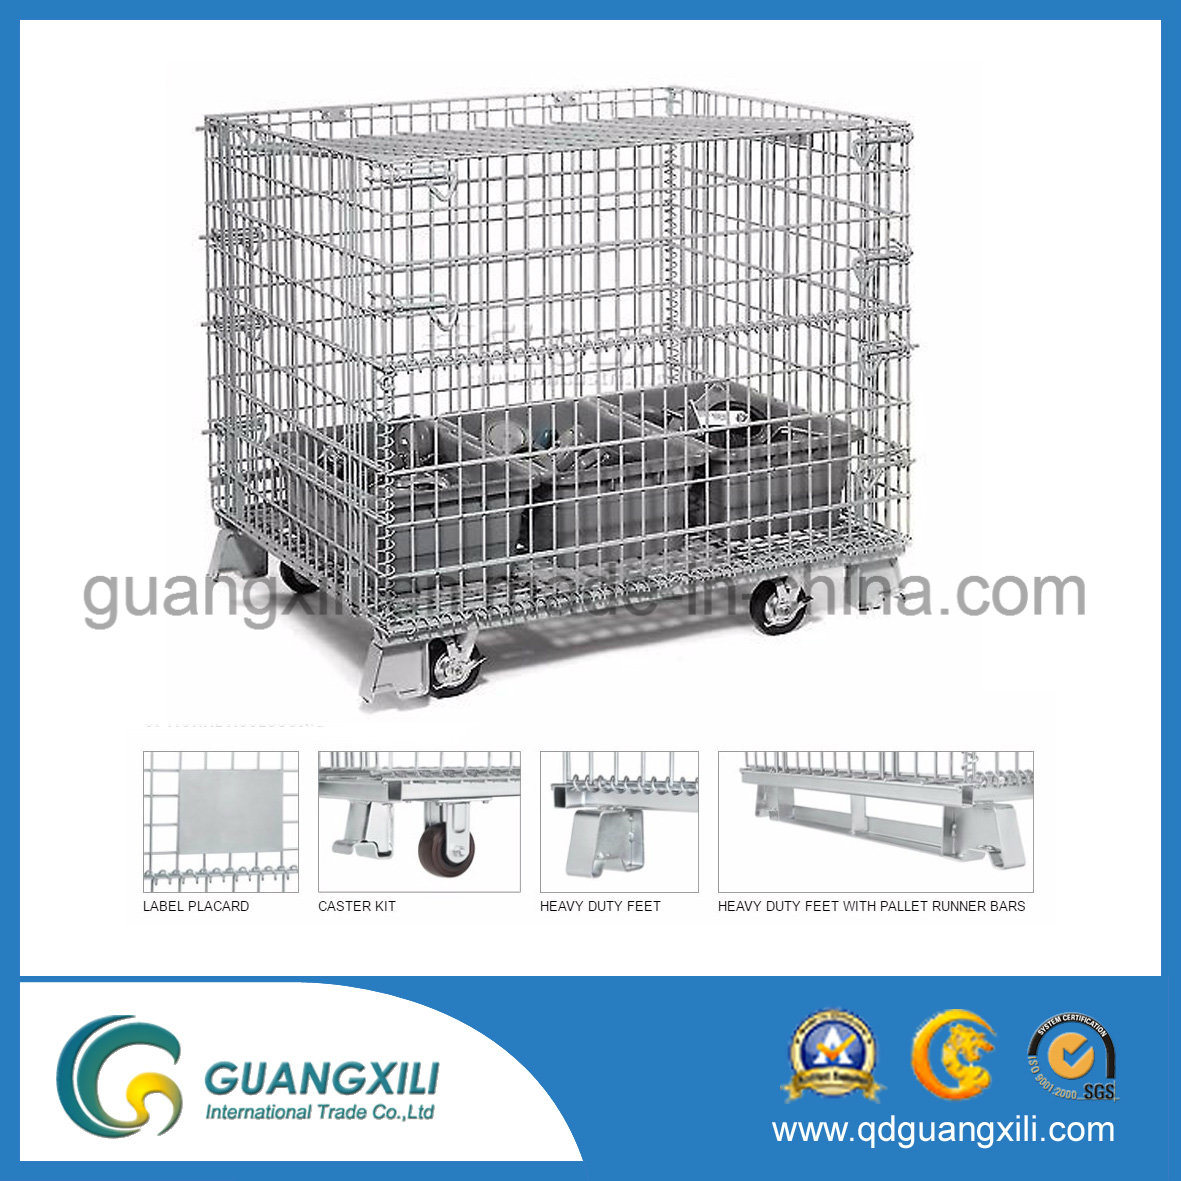 1200*1000*900 Heavy Duty Storage Cage with Caster /Wheel